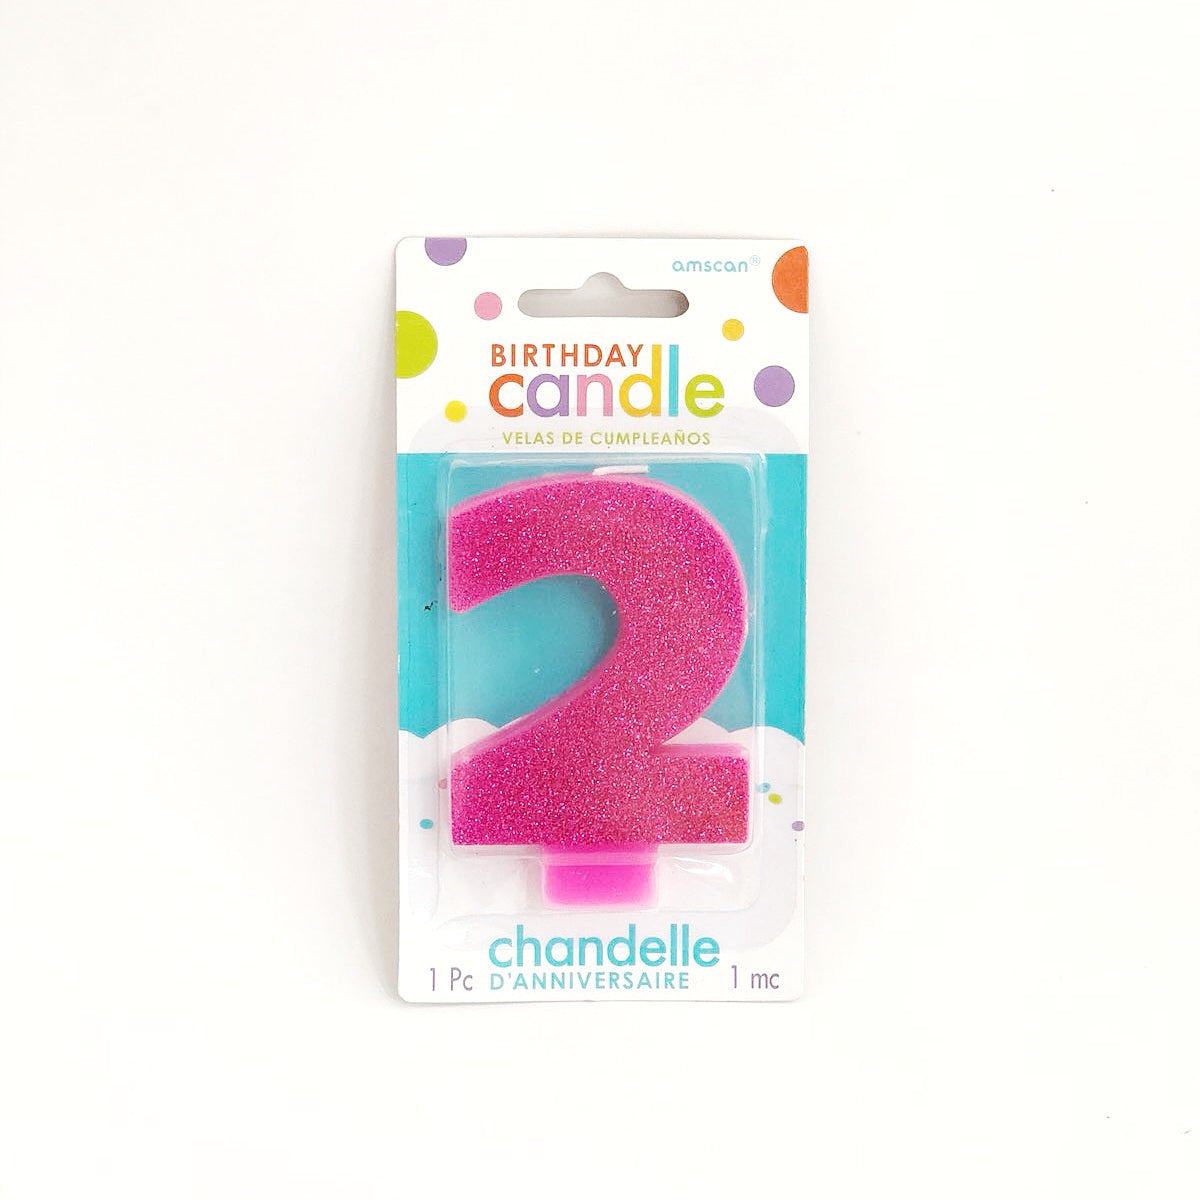 Amscan Candle (Glittered)